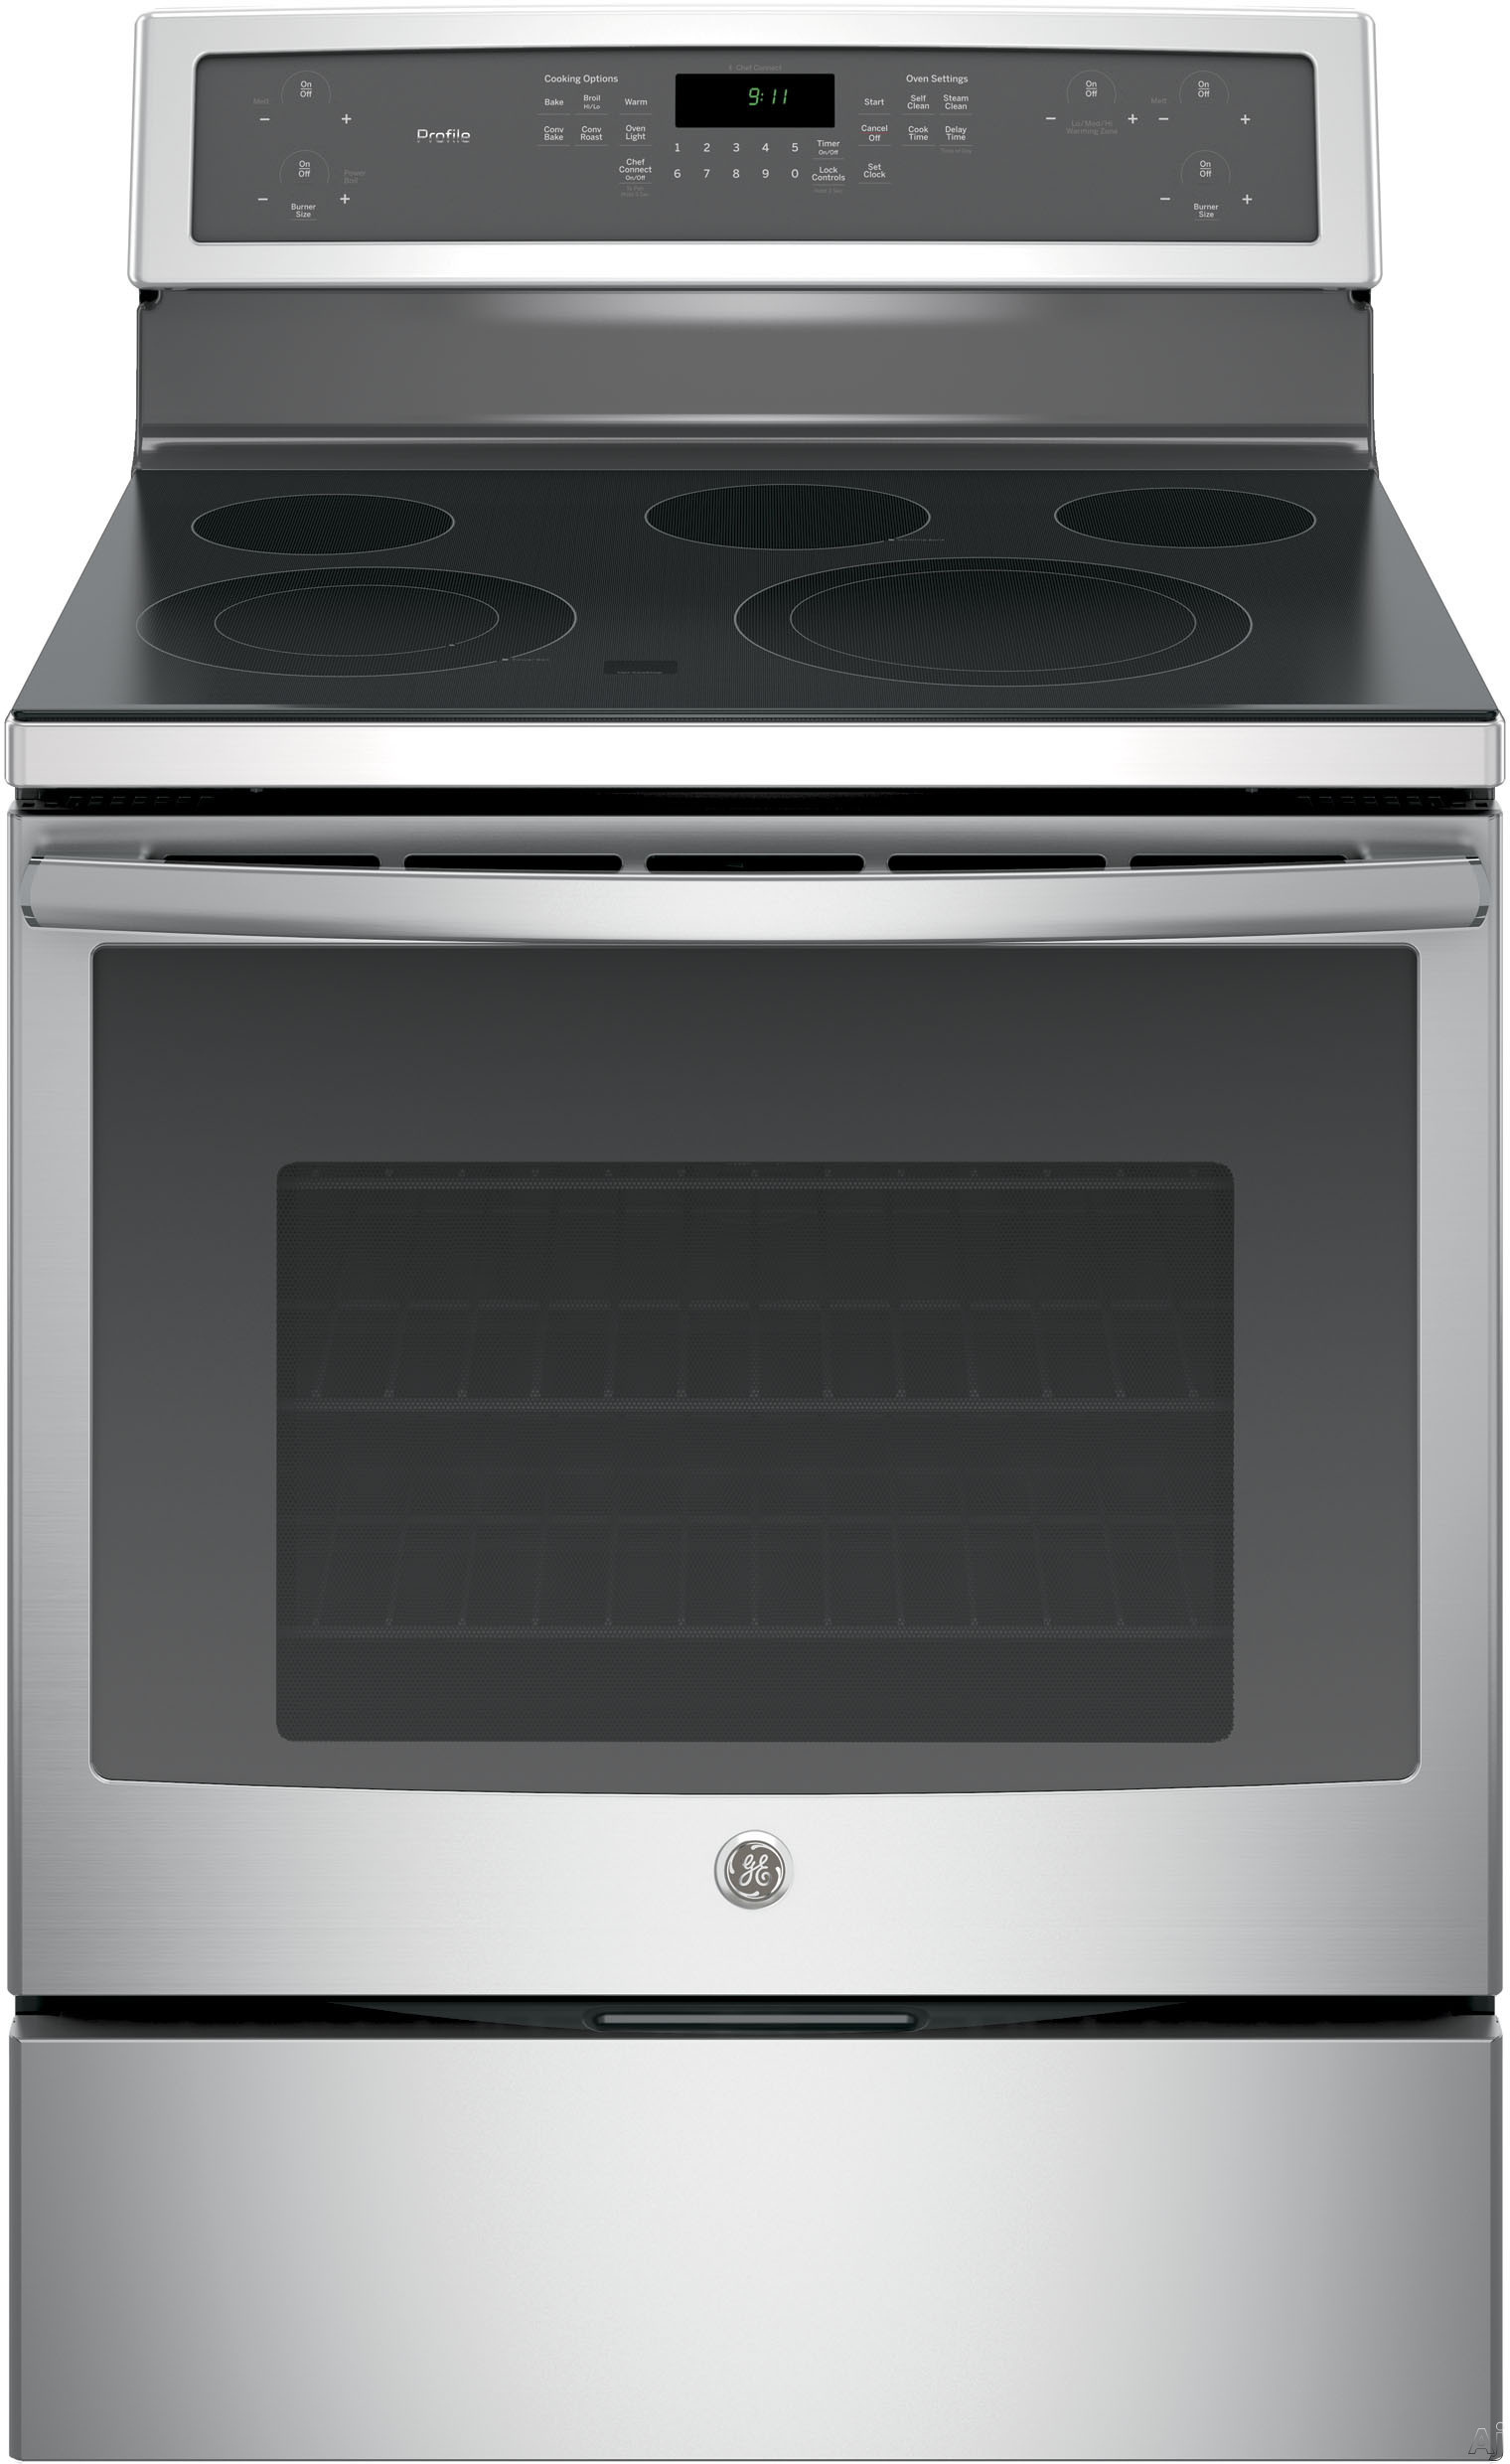 GE Profile PB911SJSS 30 Inch Freestanding Electric Range with True Convection, Chef Connect, Fast Preheat, Power Boil Element, Variable Element, Warming Zone, Storage Drawer, Steam Self-Clean, 5 Smoot